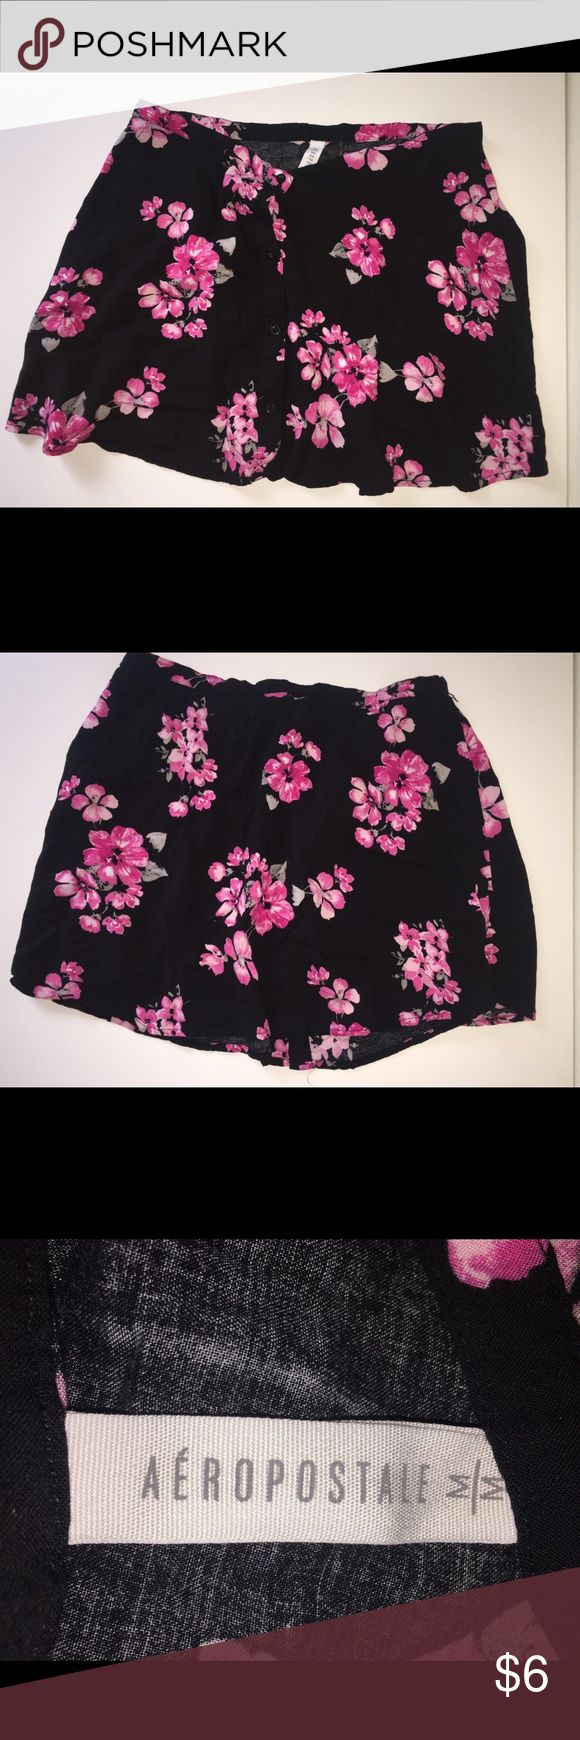 Aeropostale Mini-skirt! This is a super cute mini-skirt size M. It's really pretty but I guess it is too short for me now. It has bright and light pink flowers on a black background. I wore it  once at the beach, but that's it! Aeropostale Skirts Mini